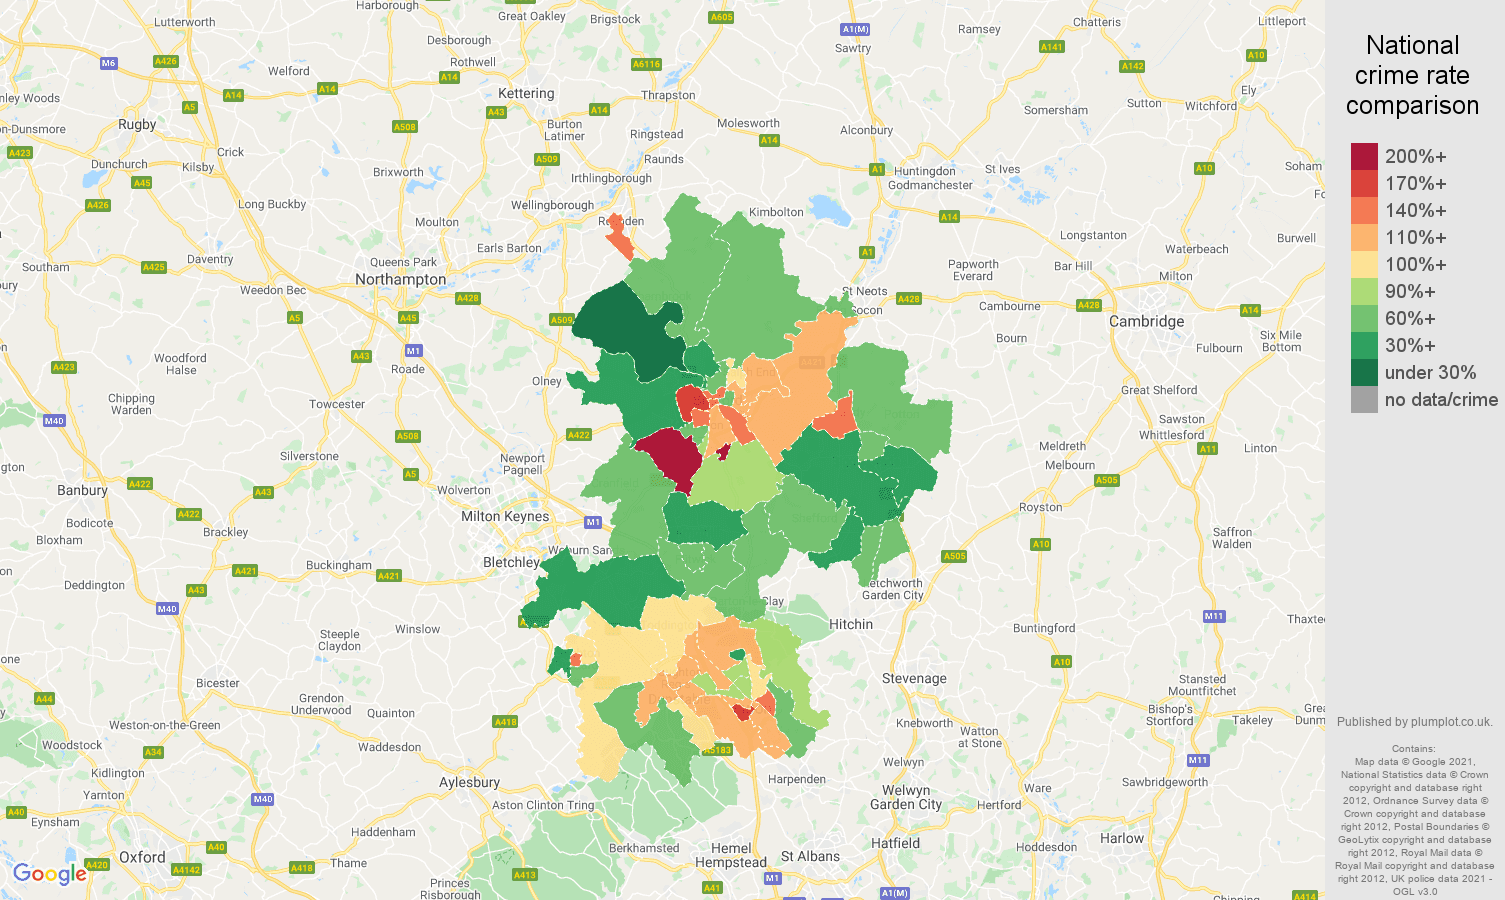 Bedfordshire criminal damage and arson crime rate comparison map